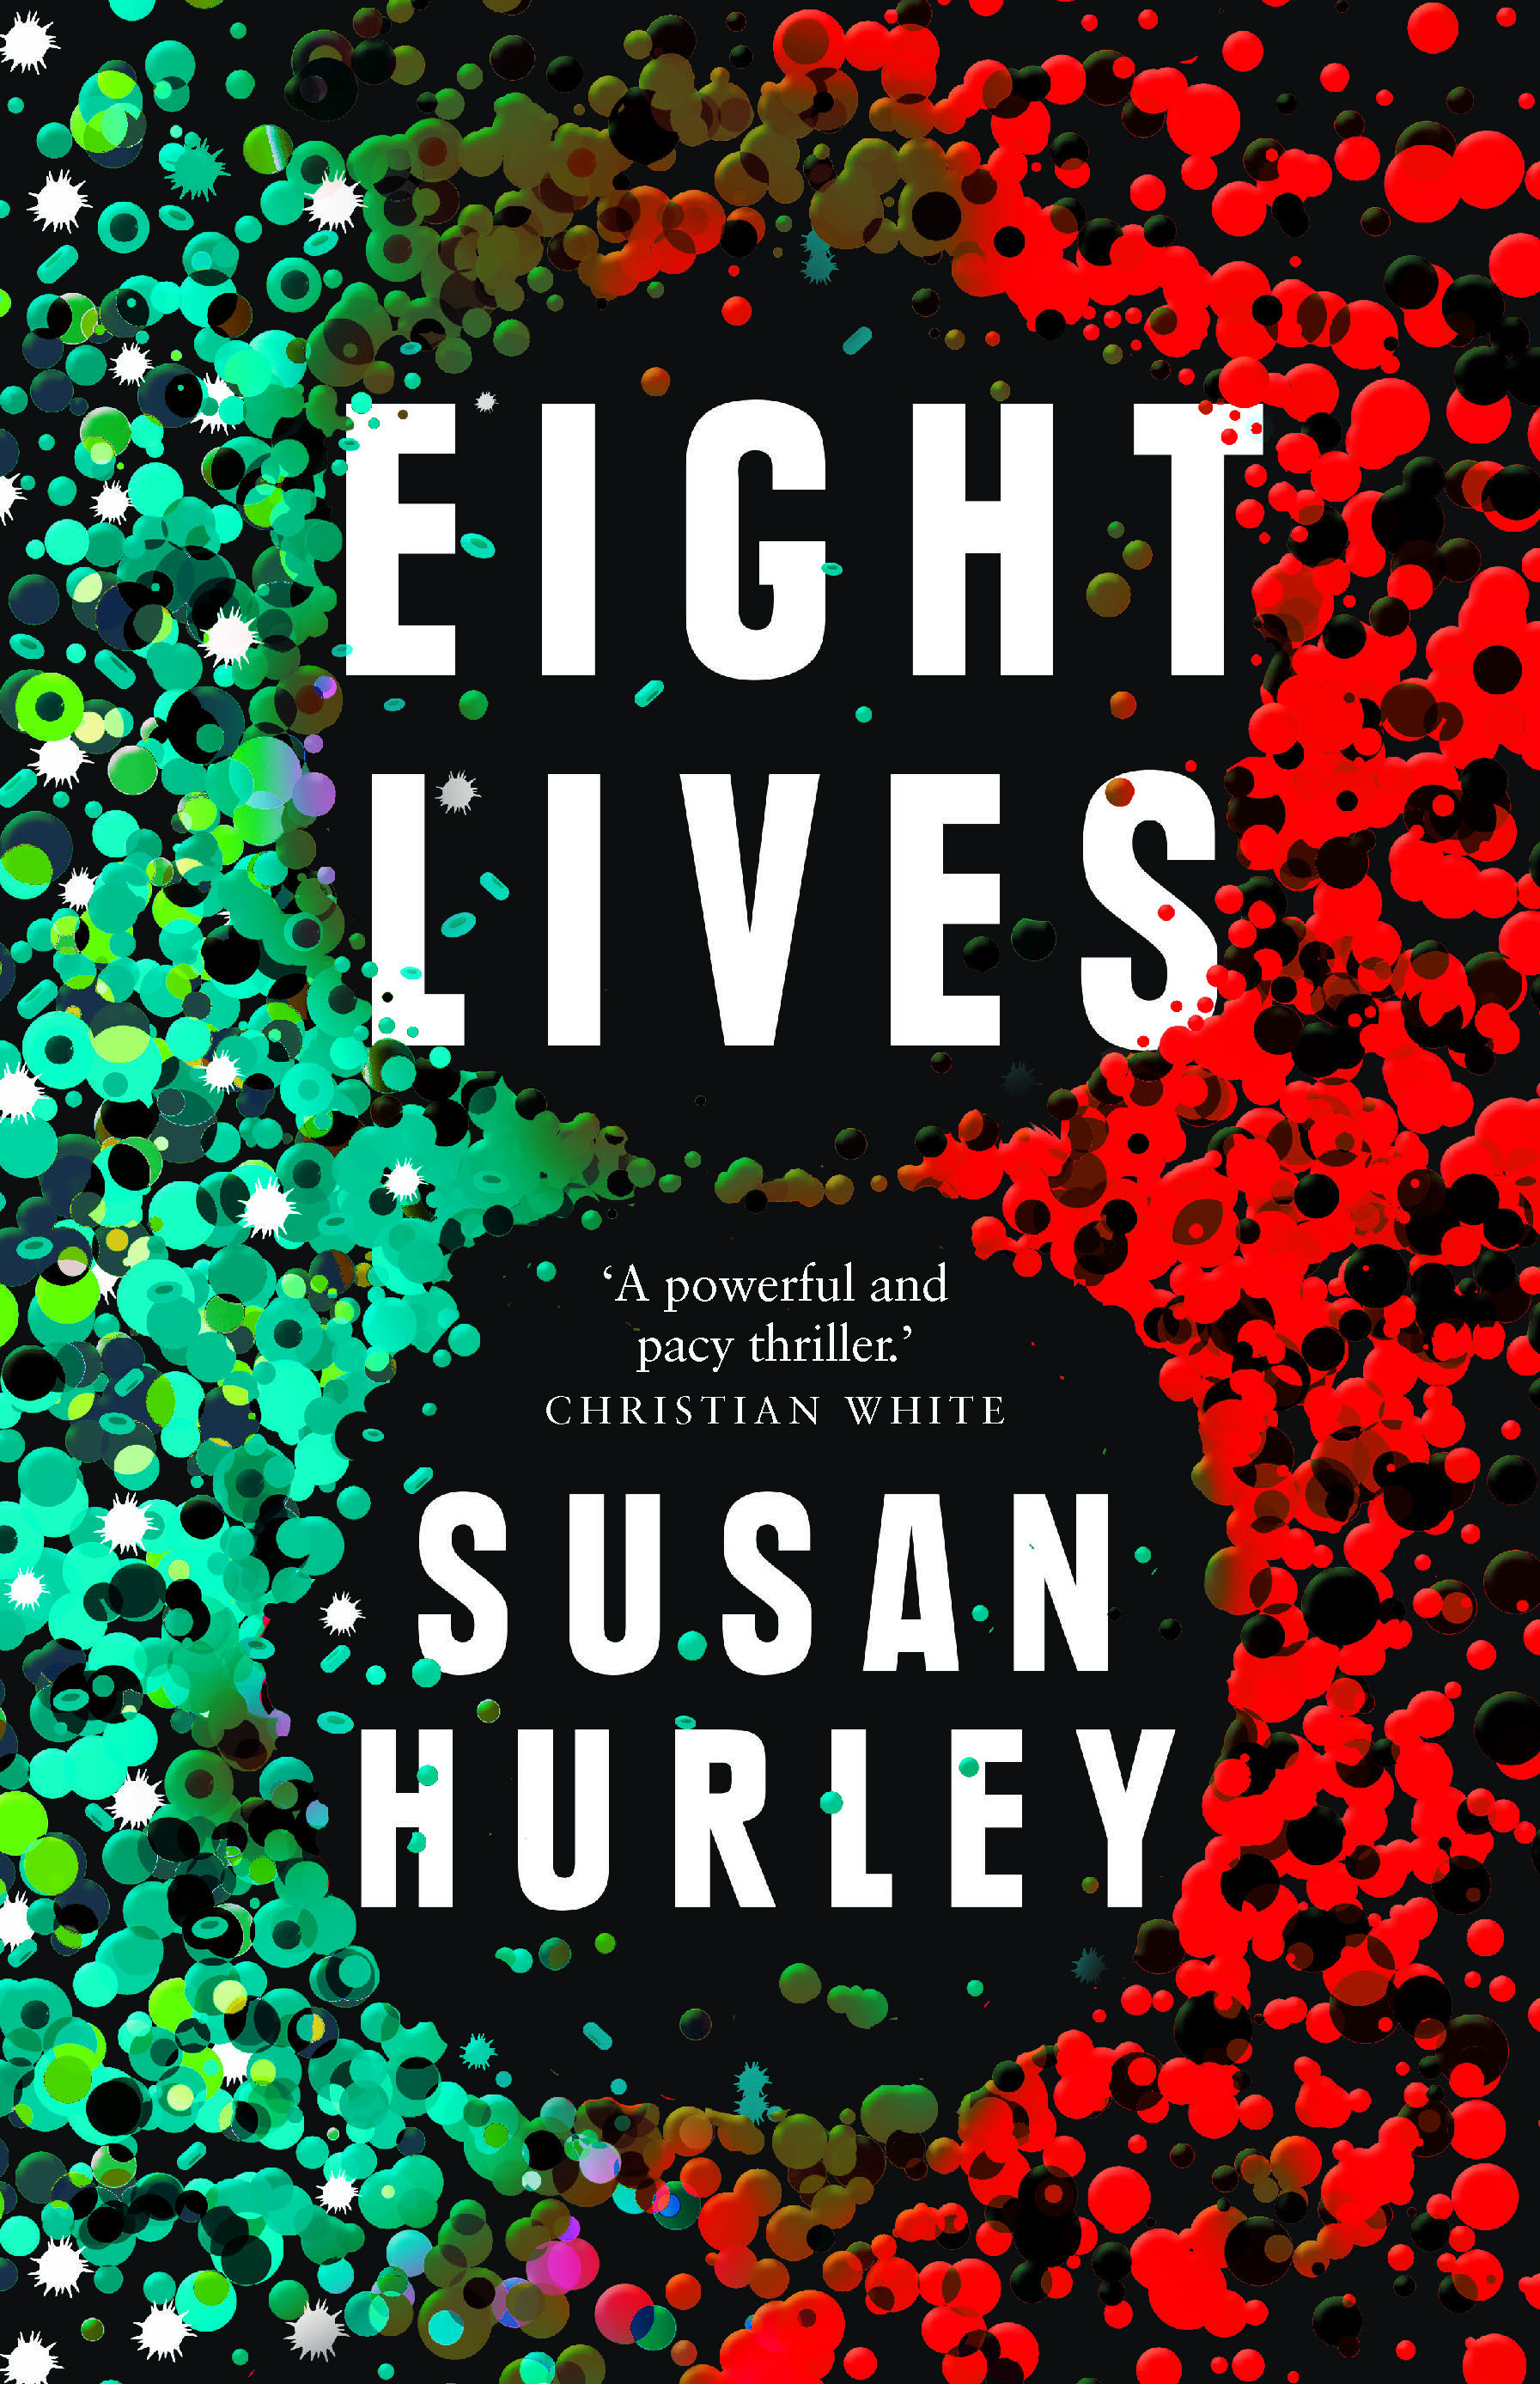 Cover image of 'Eight Lives' by Susan Hurley